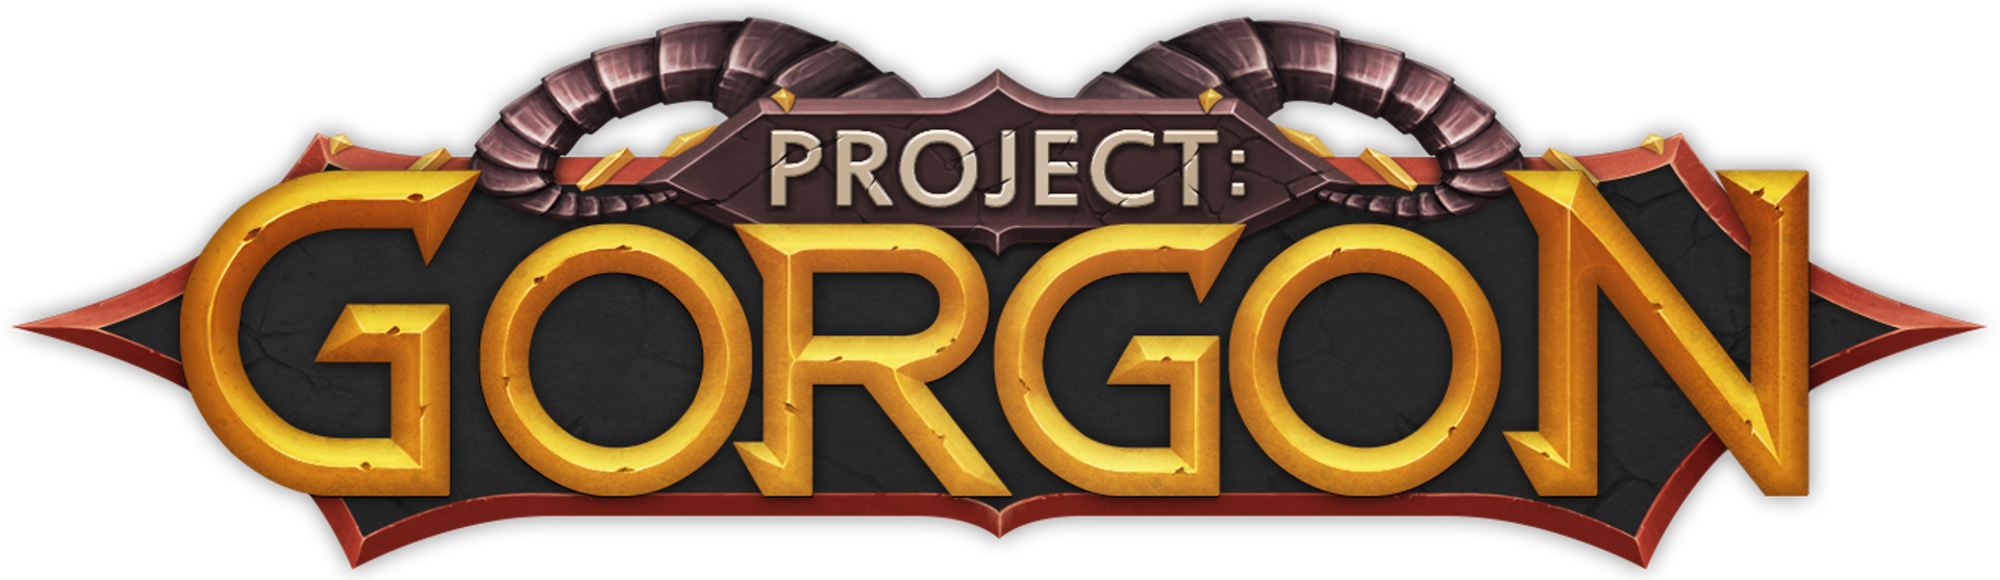 Project Gorgon (logo with dropshadow).png